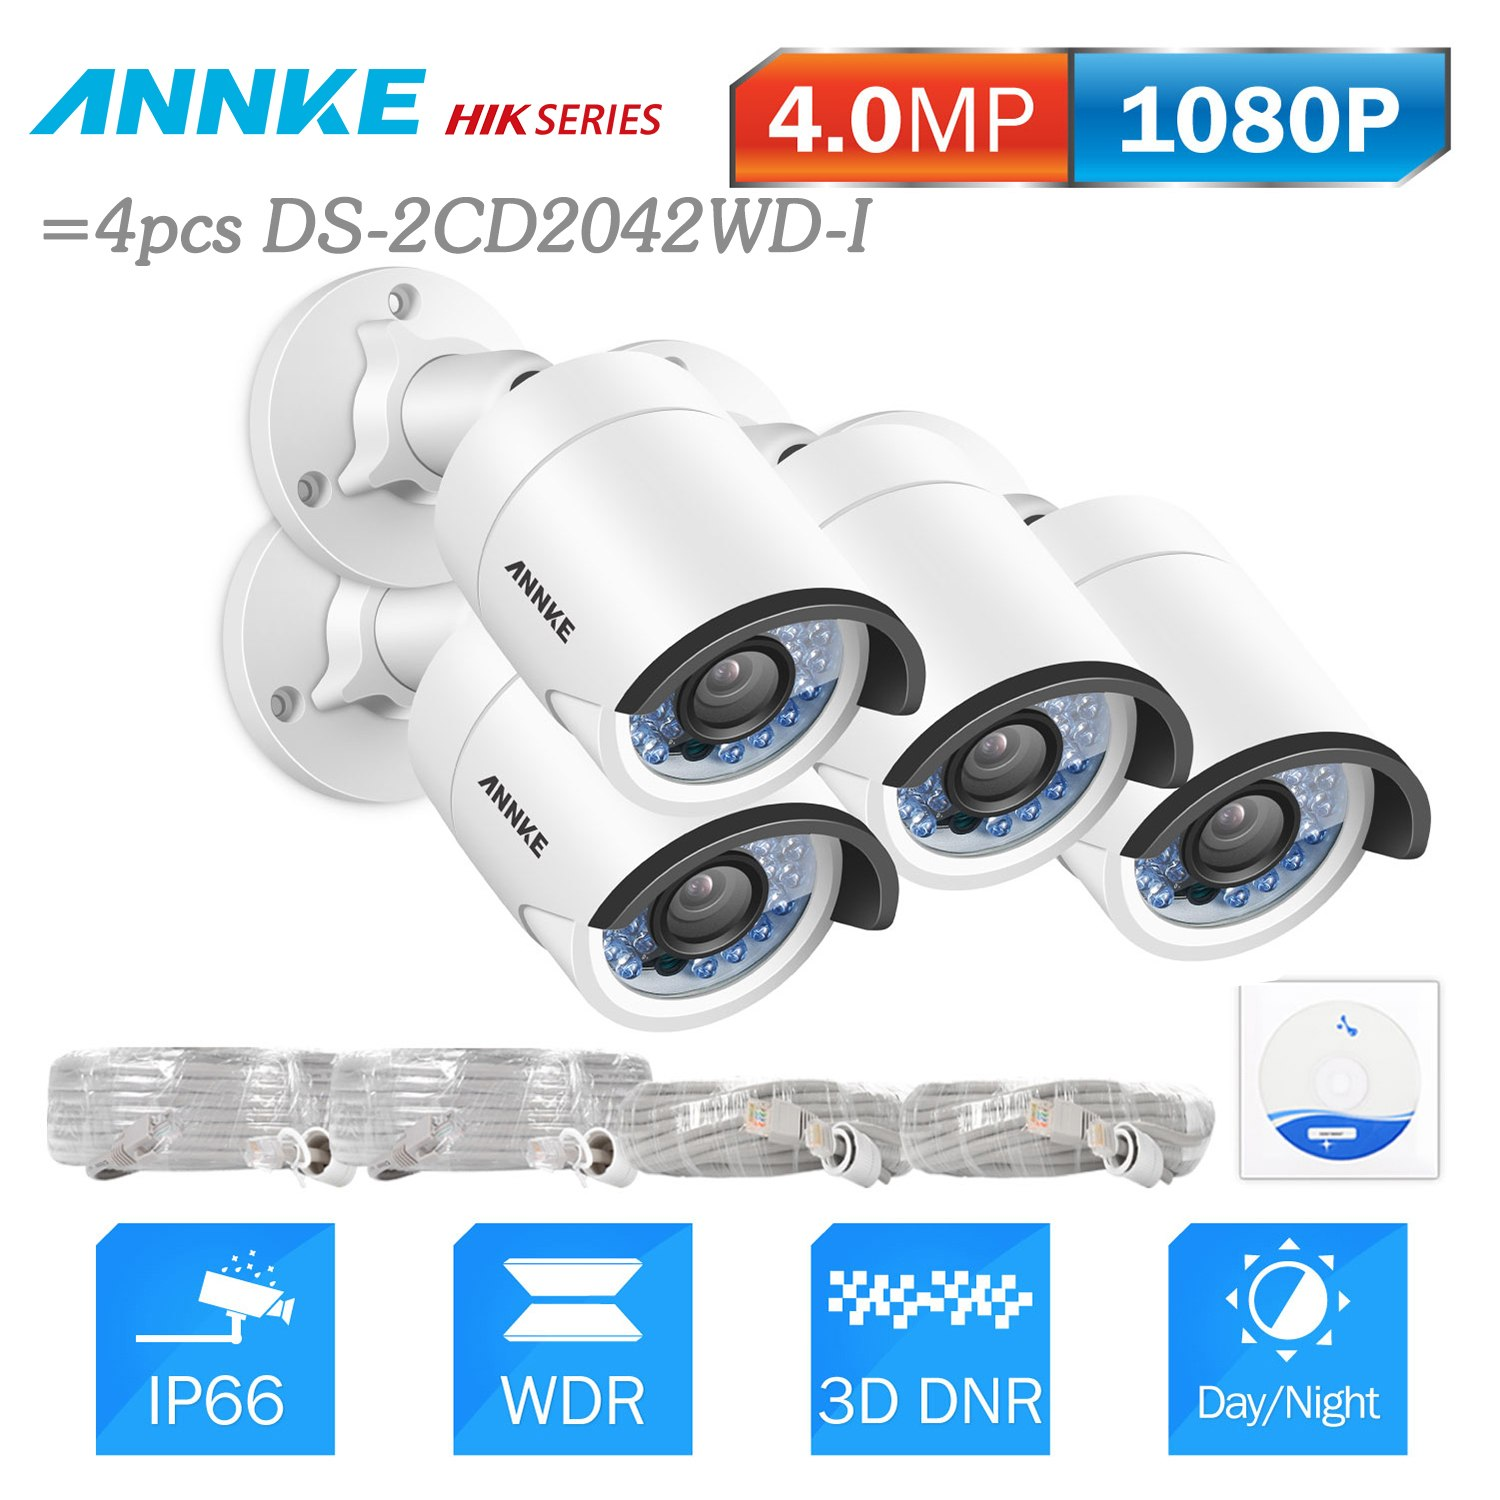 ANNKE 4pcs 4MP HD POE Security Bullet IP Camera 30M Night Vision With IP66 Outdoor Weatherproof